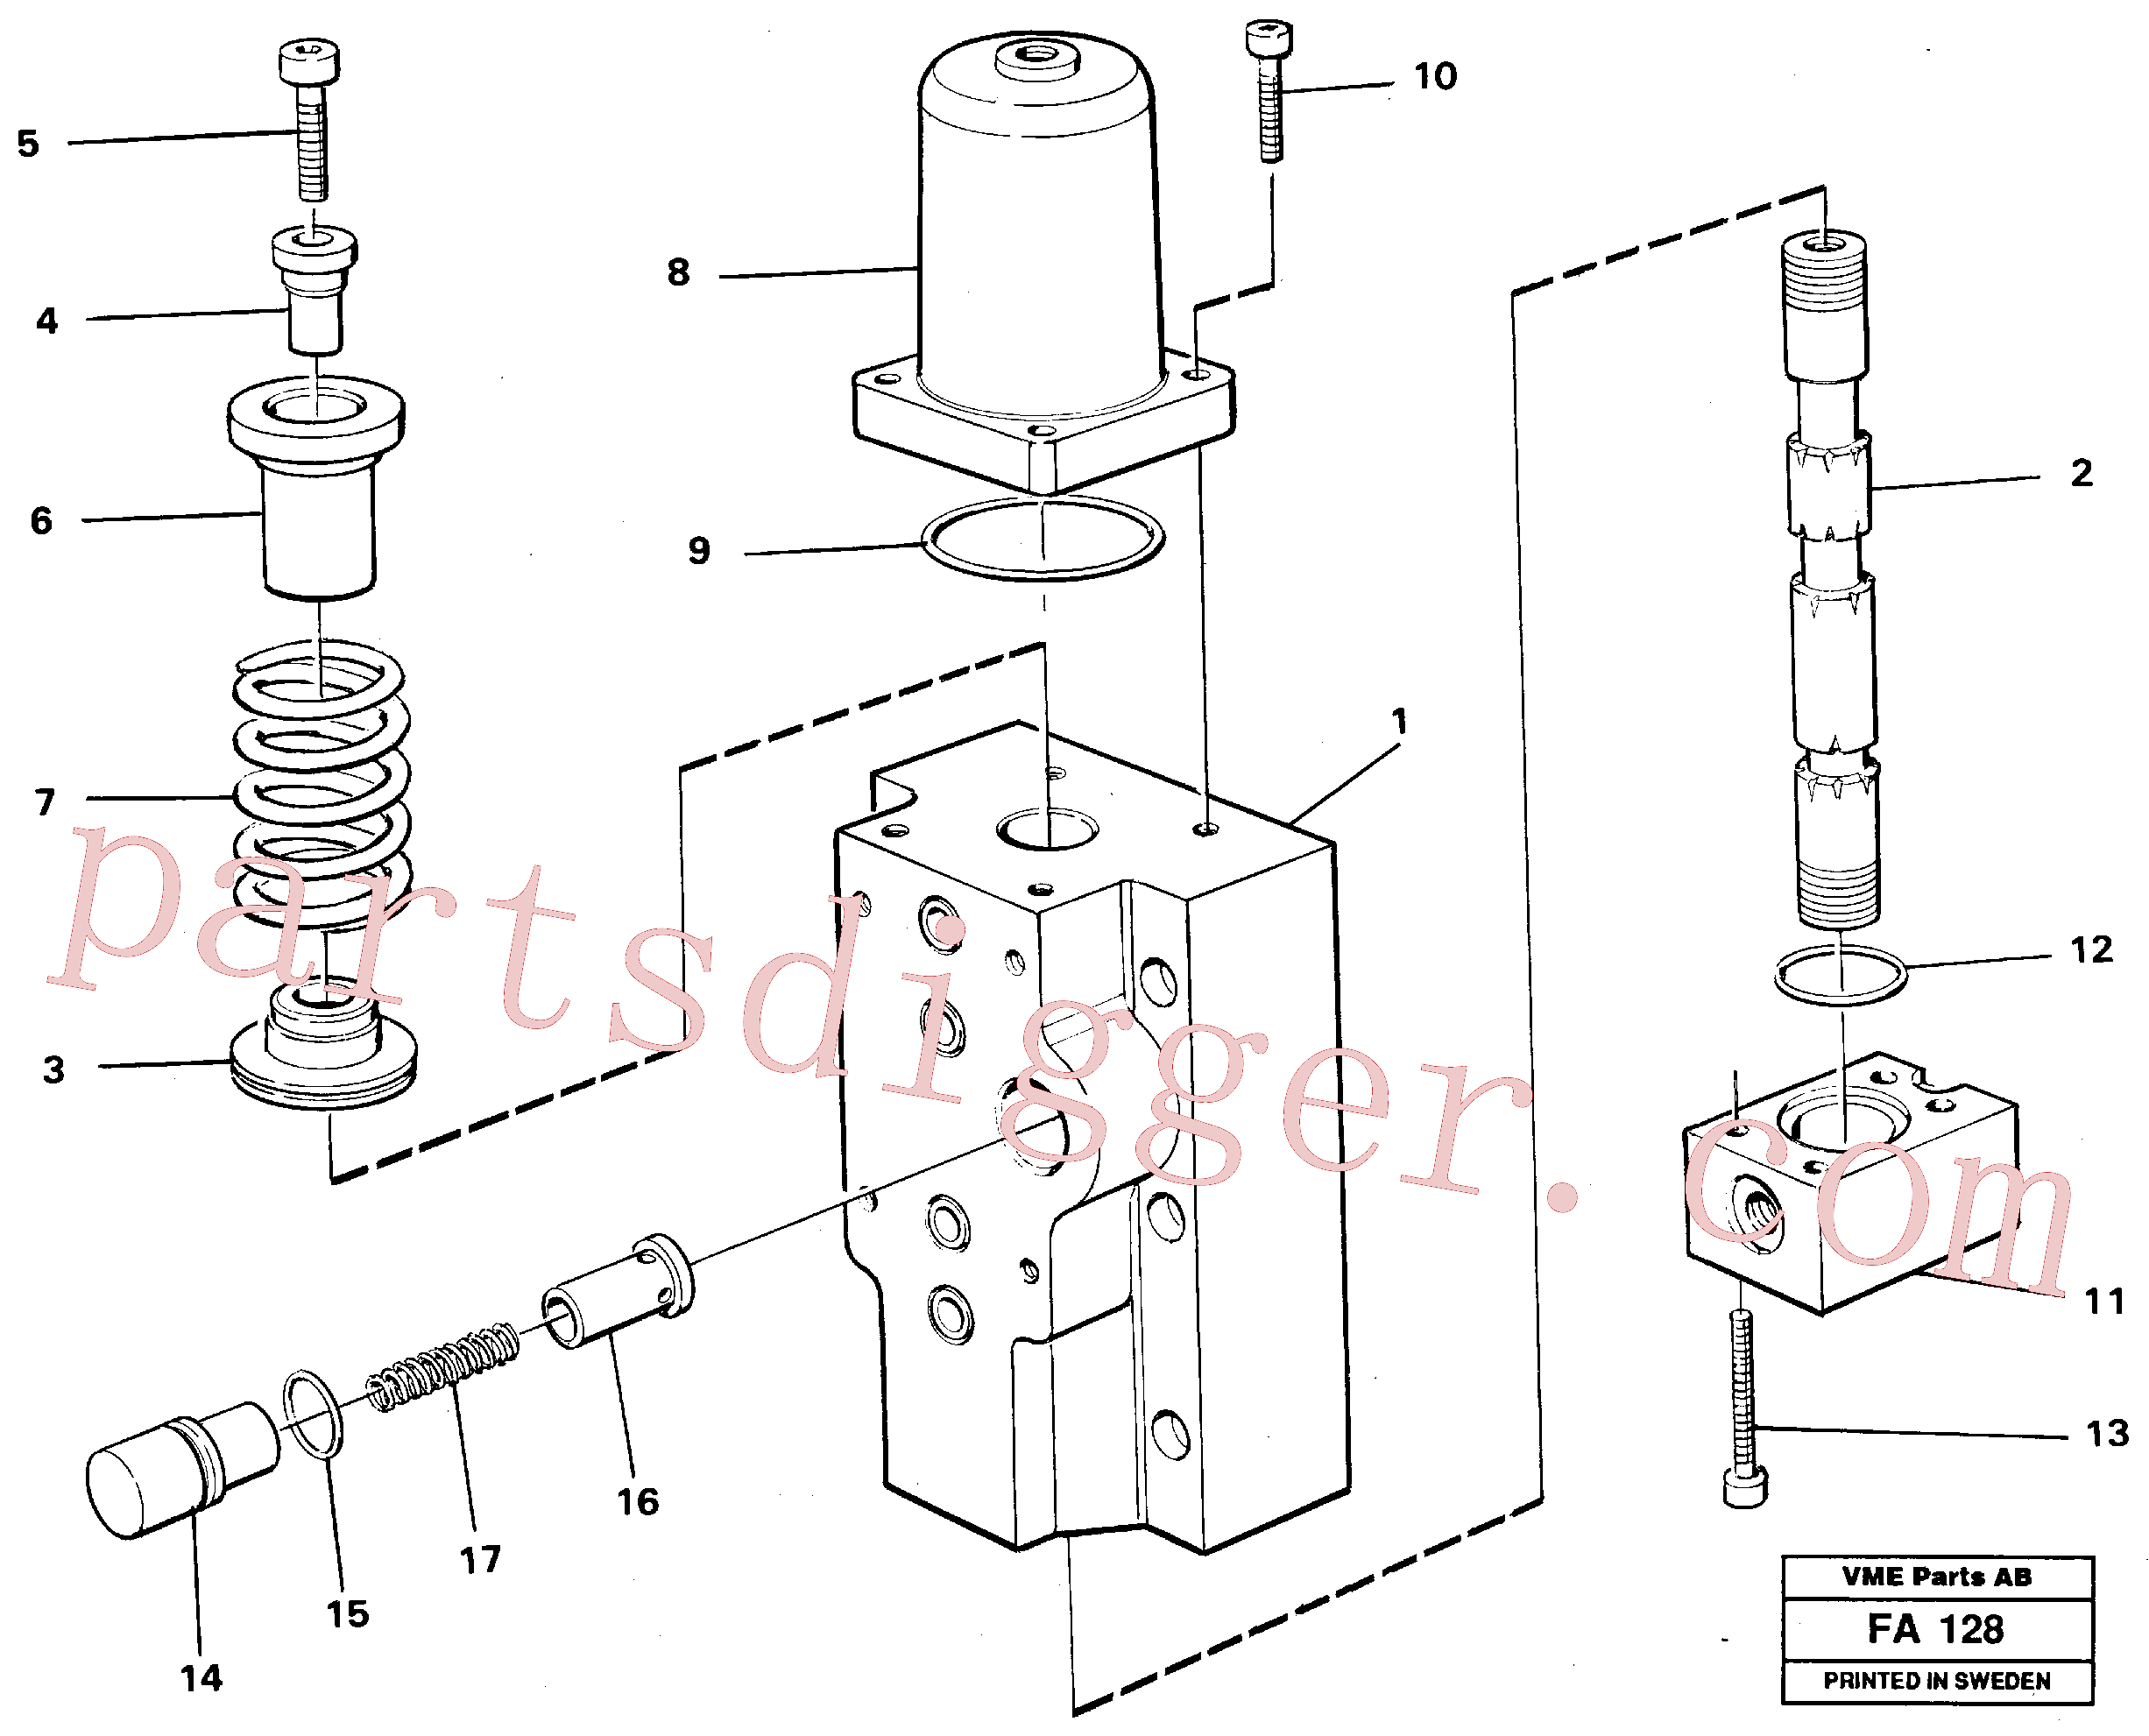 VOE14252108 for Volvo Four-way valve for hammer/shears, Four-way valves Primary(FA128 assembly)